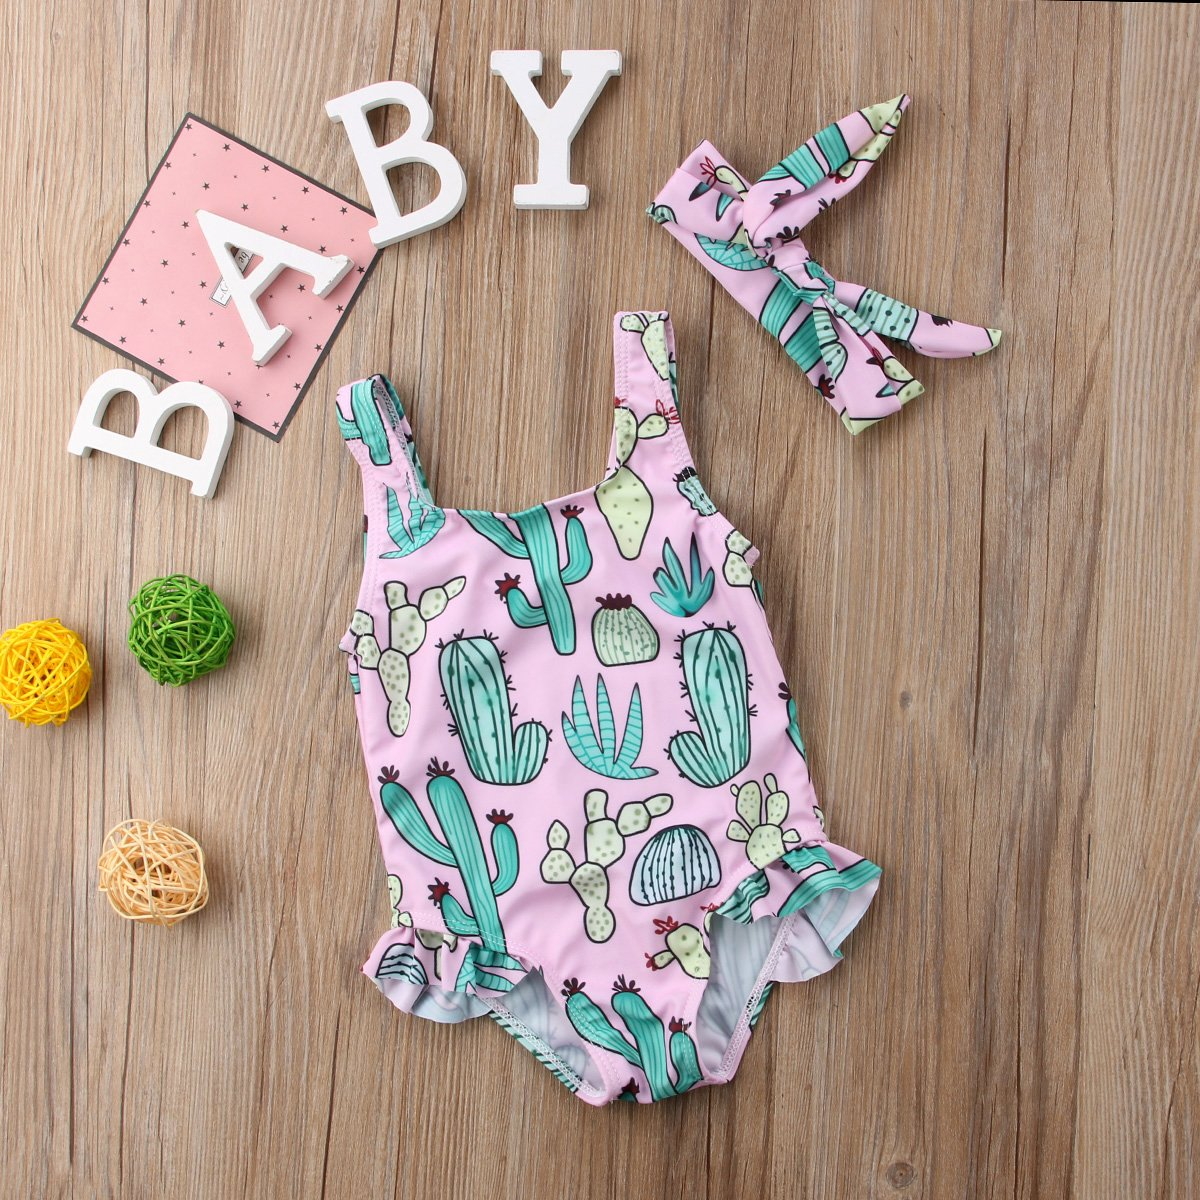 b9c83ef07a367 ... ITFABS Newborn Baby Girl Cactus Swimsuit Ruffles Bathing Suit Bikini  Floral Swimwear with Headband for Baby